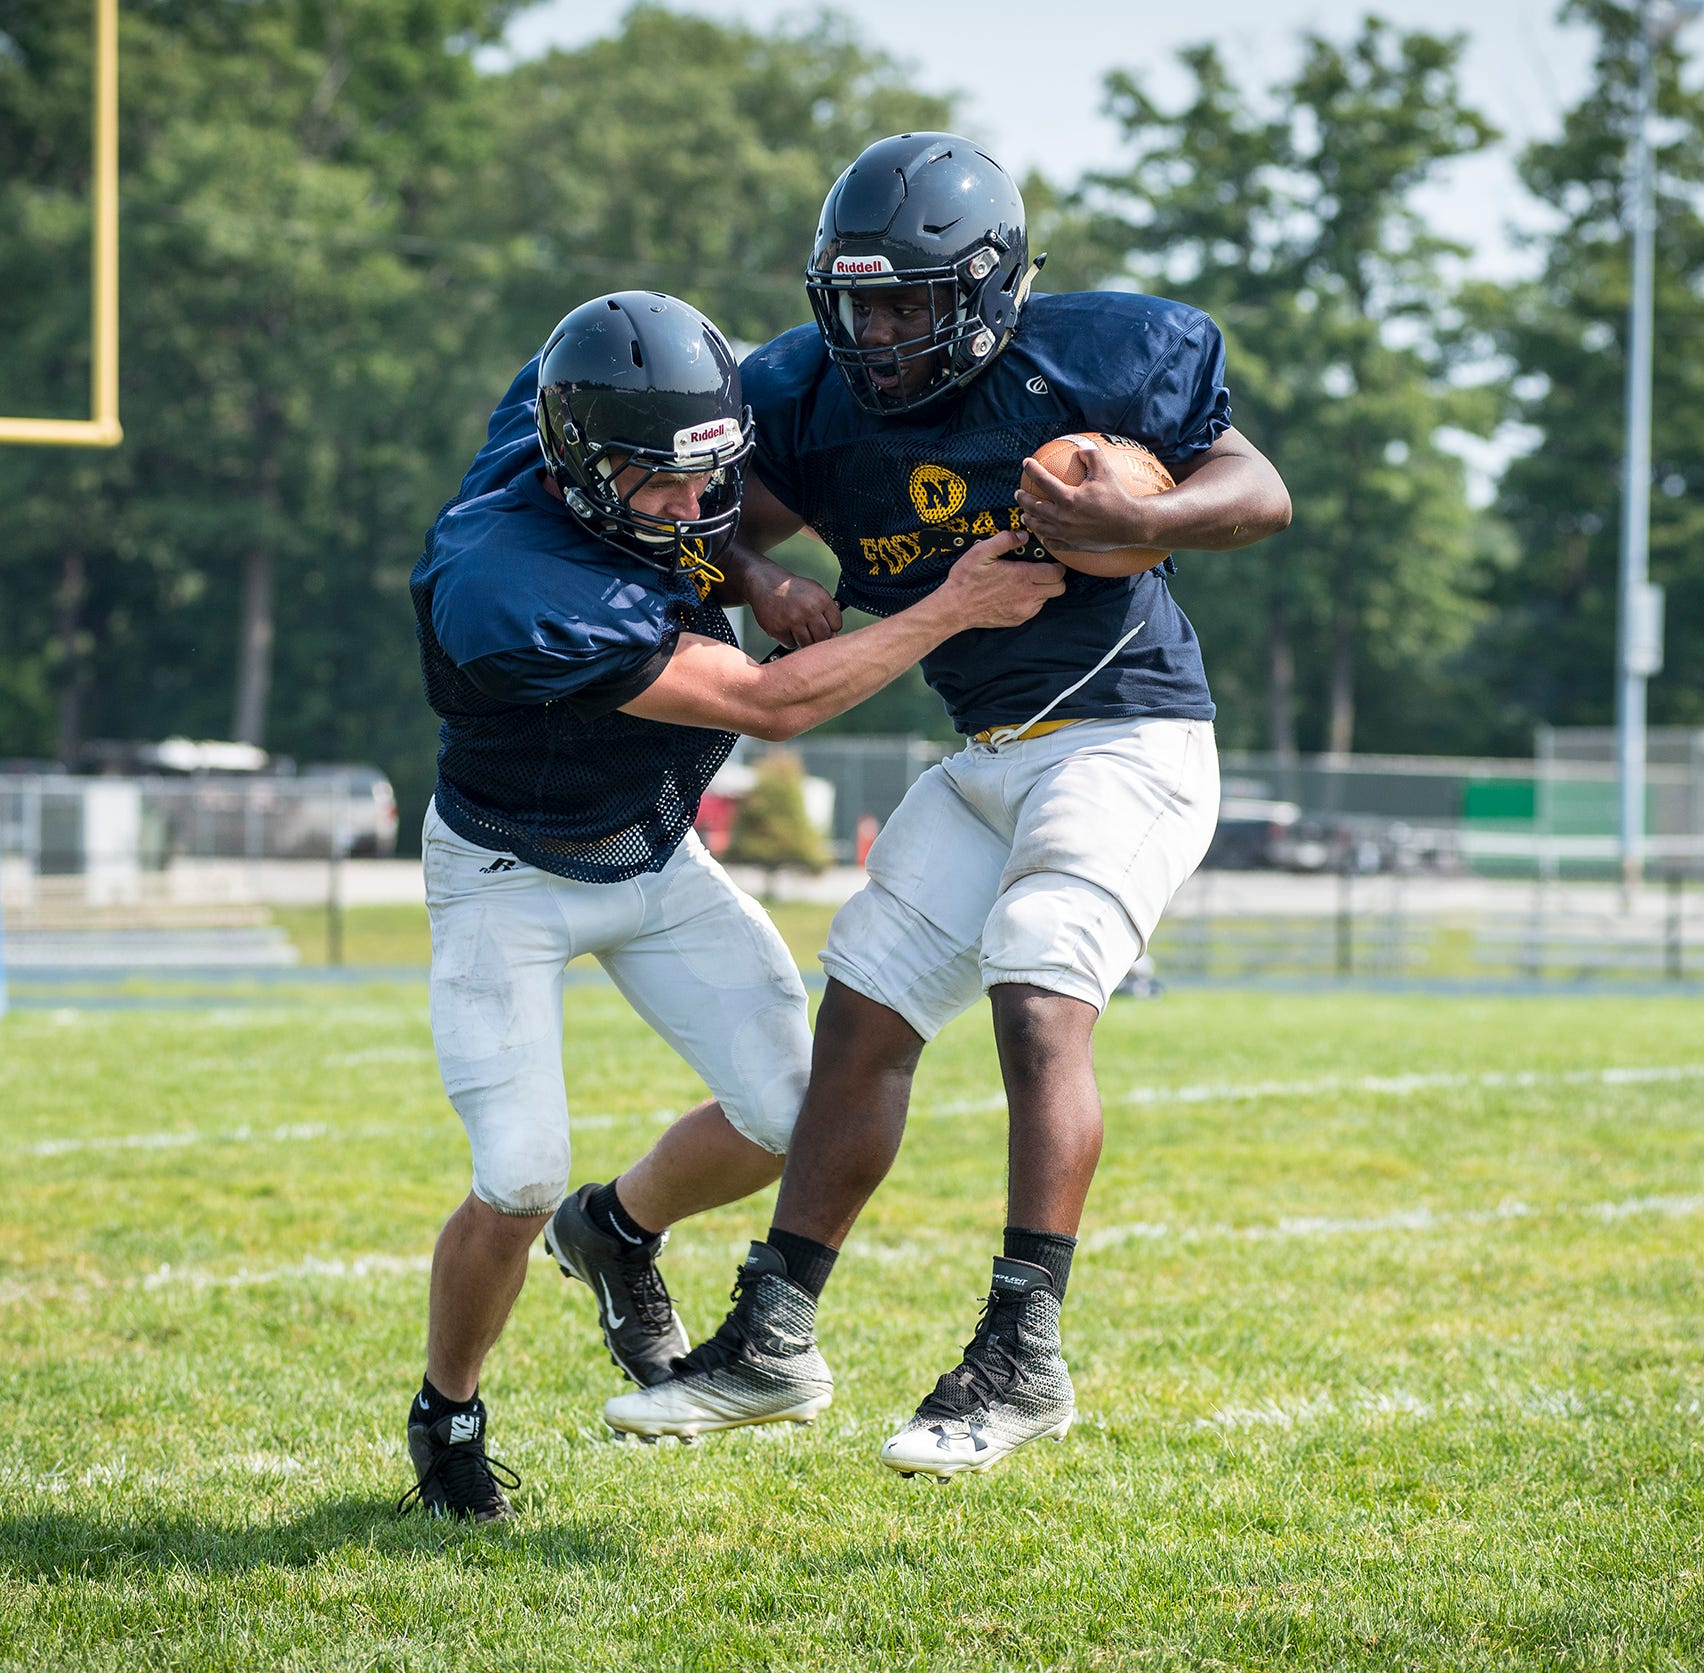 Athlete of the Week: Austin Eagle makes big play for Port Huron Northern defense